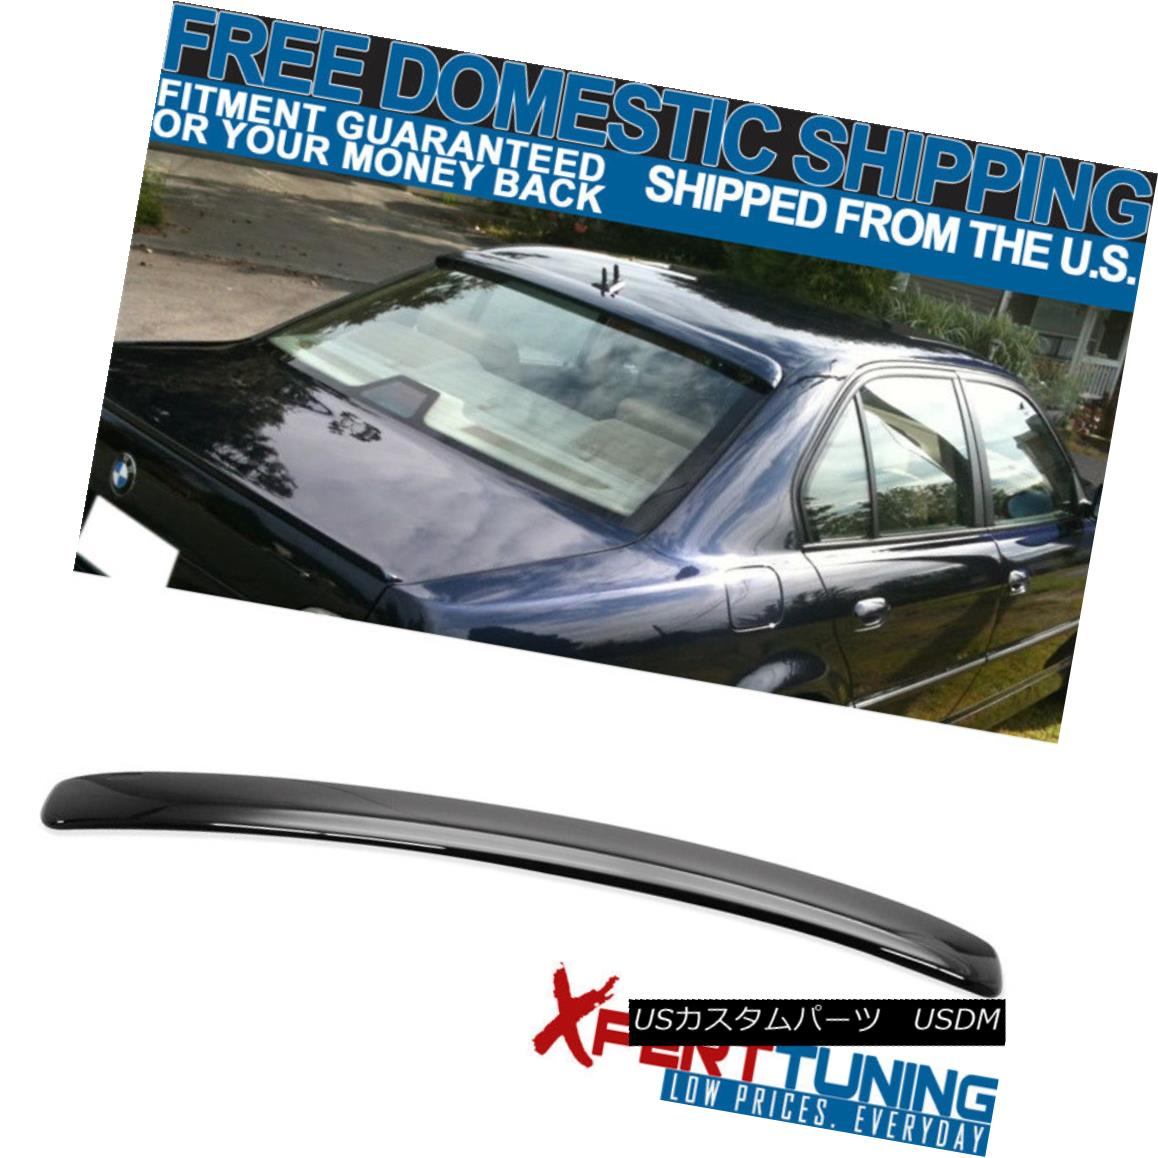 外装・エアロパーツ, その他  95-01 BMW 7 Series E38 4Dr AC Style ABS Roof Spoiler Painted Jet Black 668 95-01 BMW 7E38 4Dr ACABS668